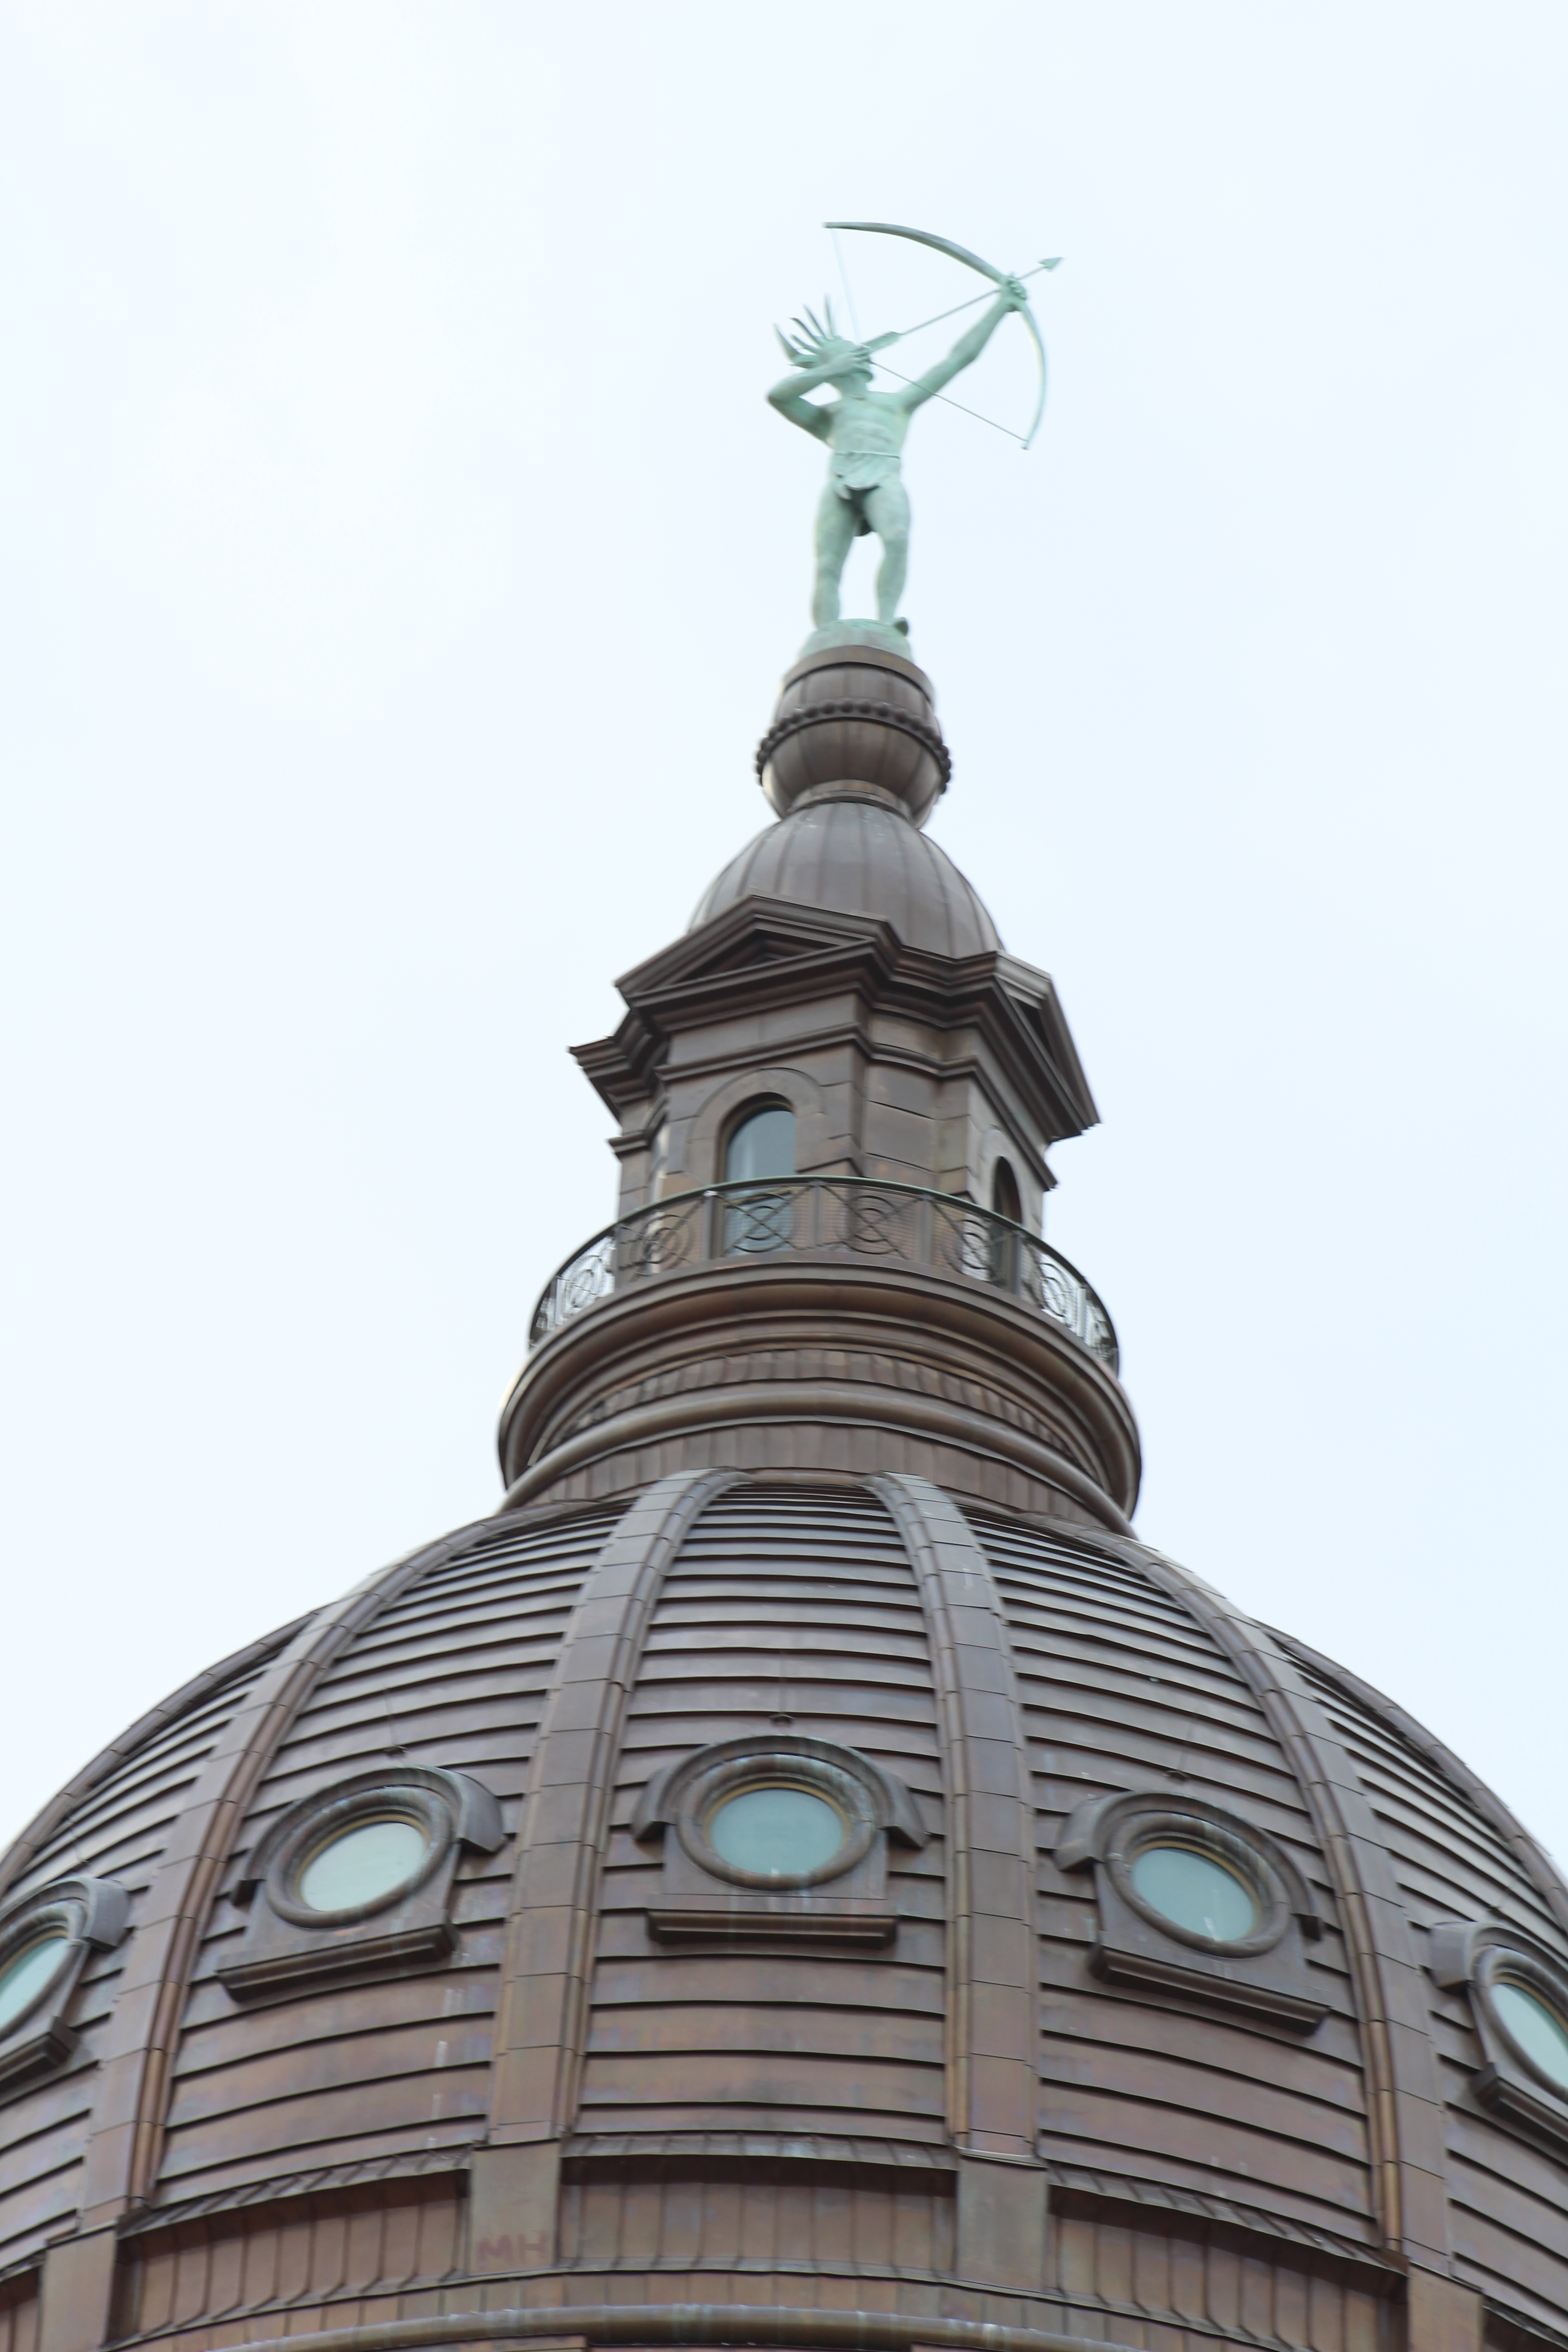 Ad Astra is the name of the statue of the Kansa Indian, which stands atop the Kansas Statehouse dome. (Photo by J. Schafer)